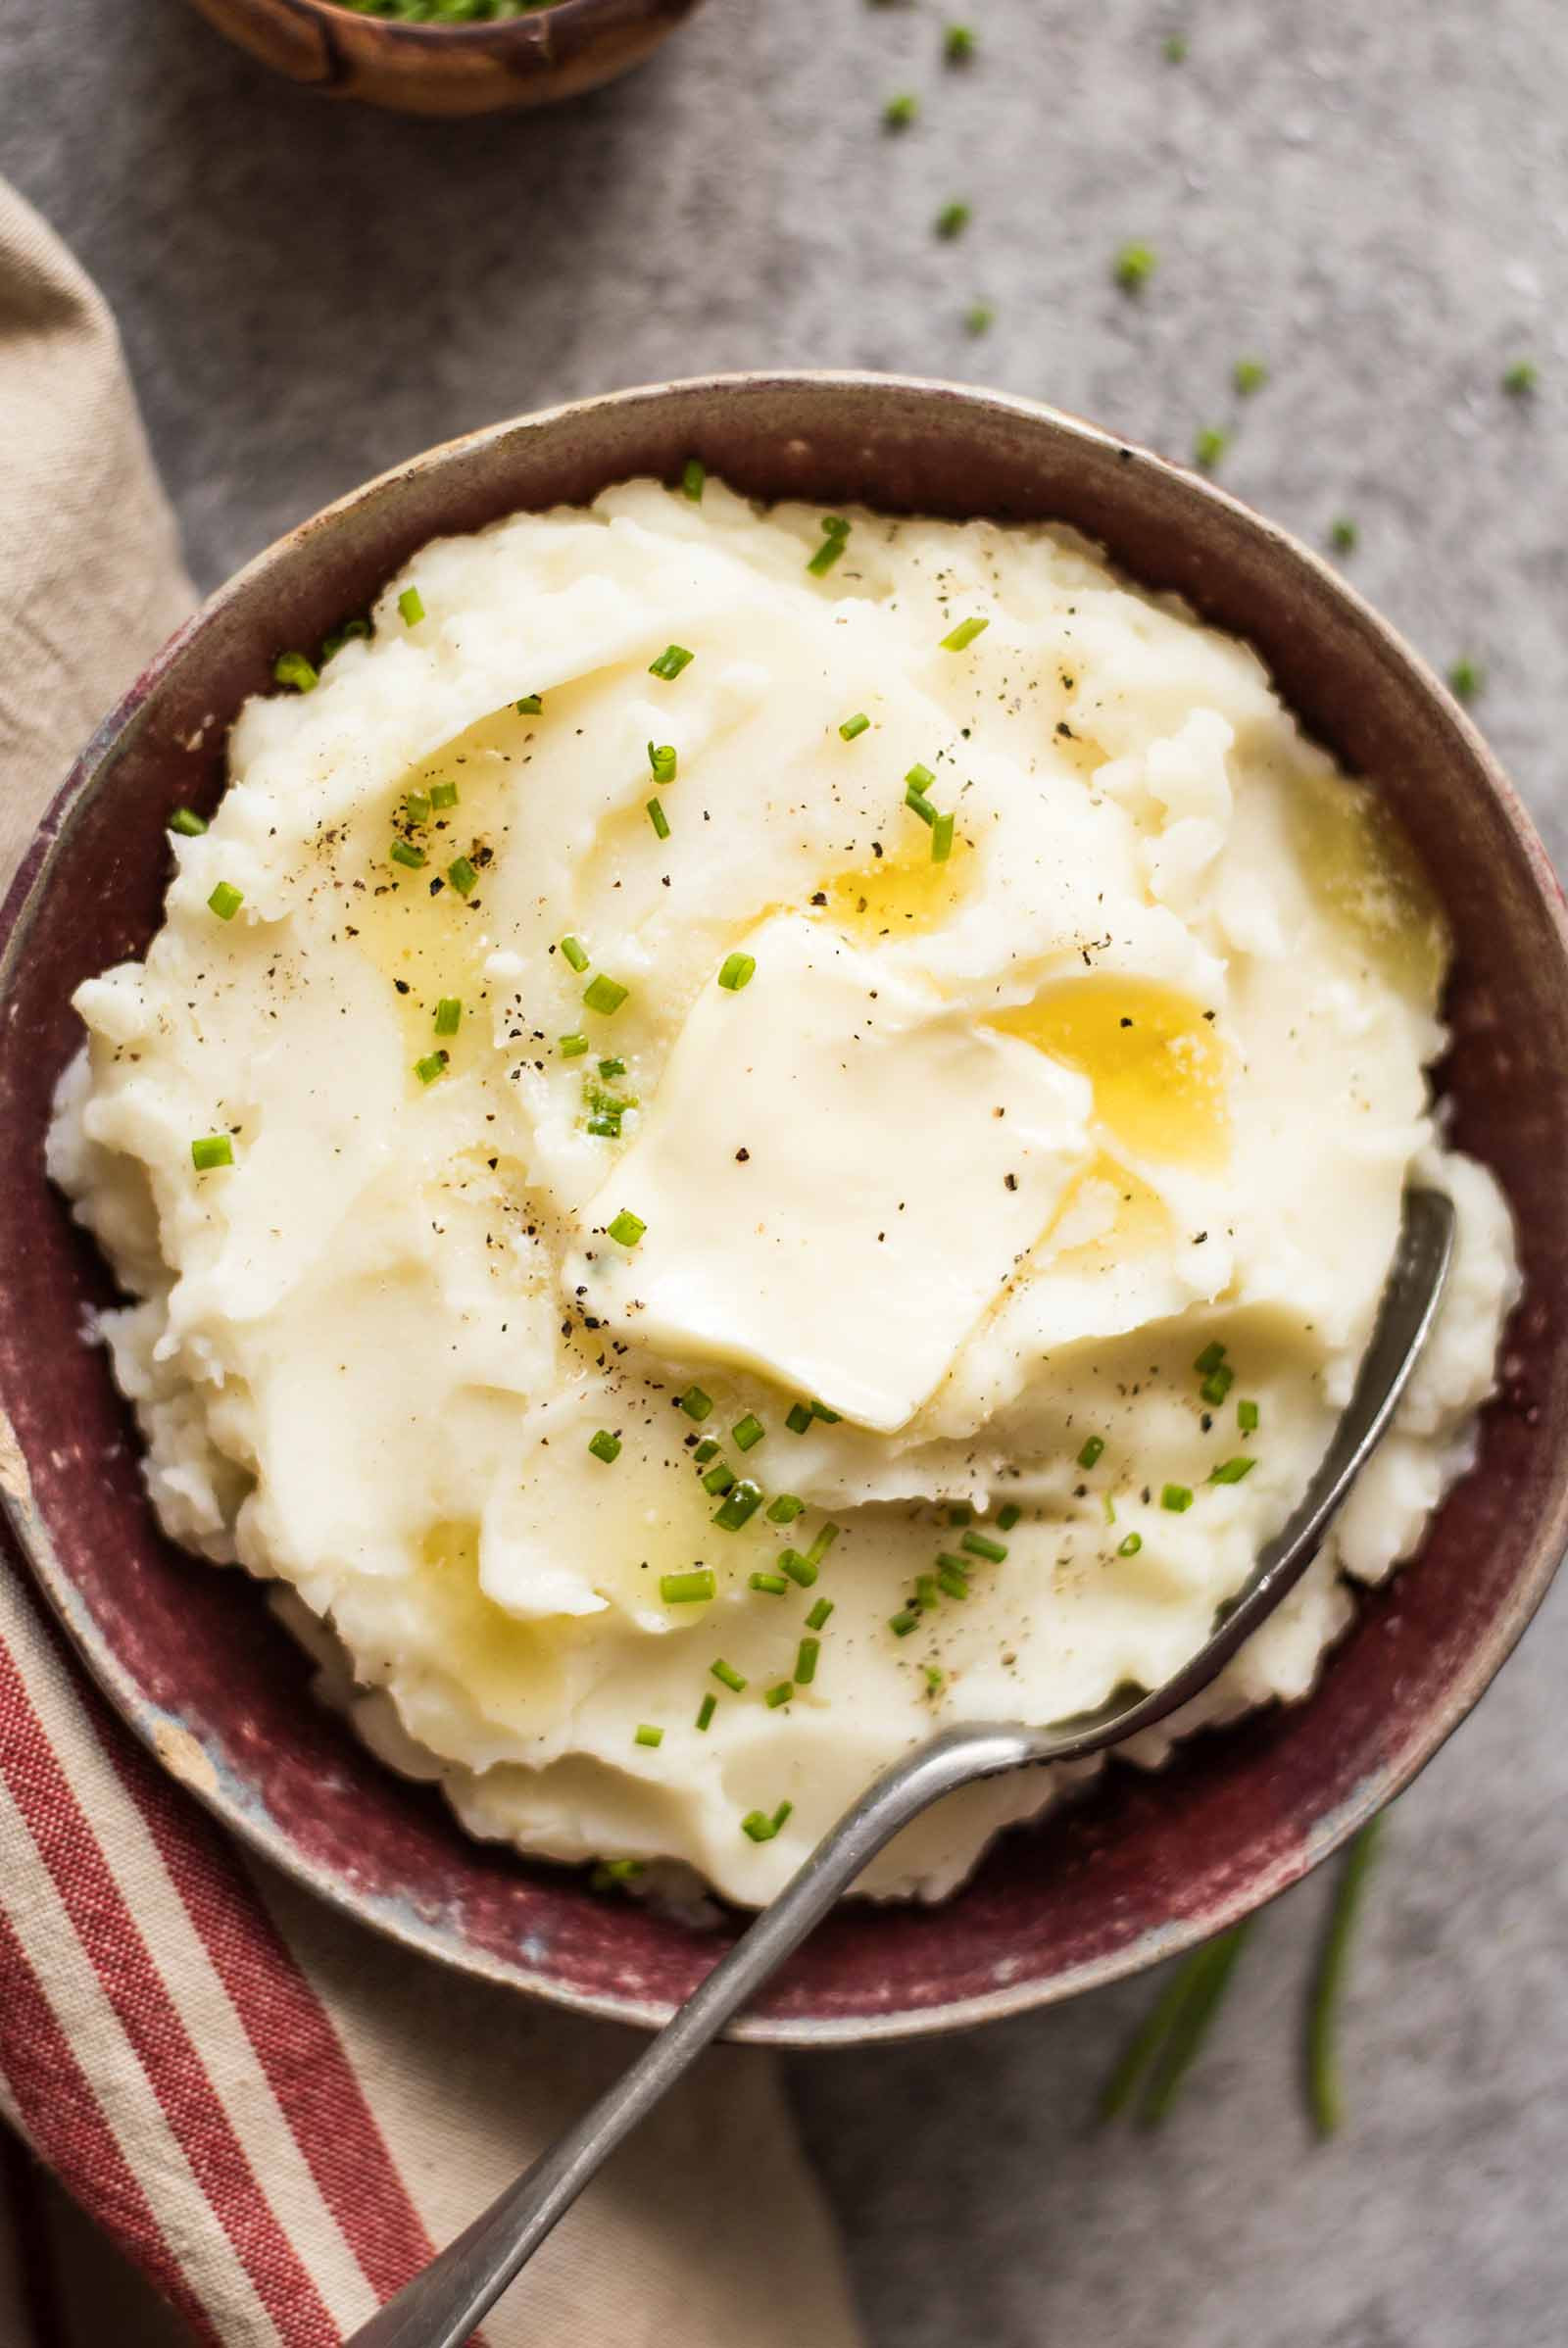 Mash Potatoes Recipe Thanksgiving  Crock Pot Mashed Potatoes Easy & No Stress